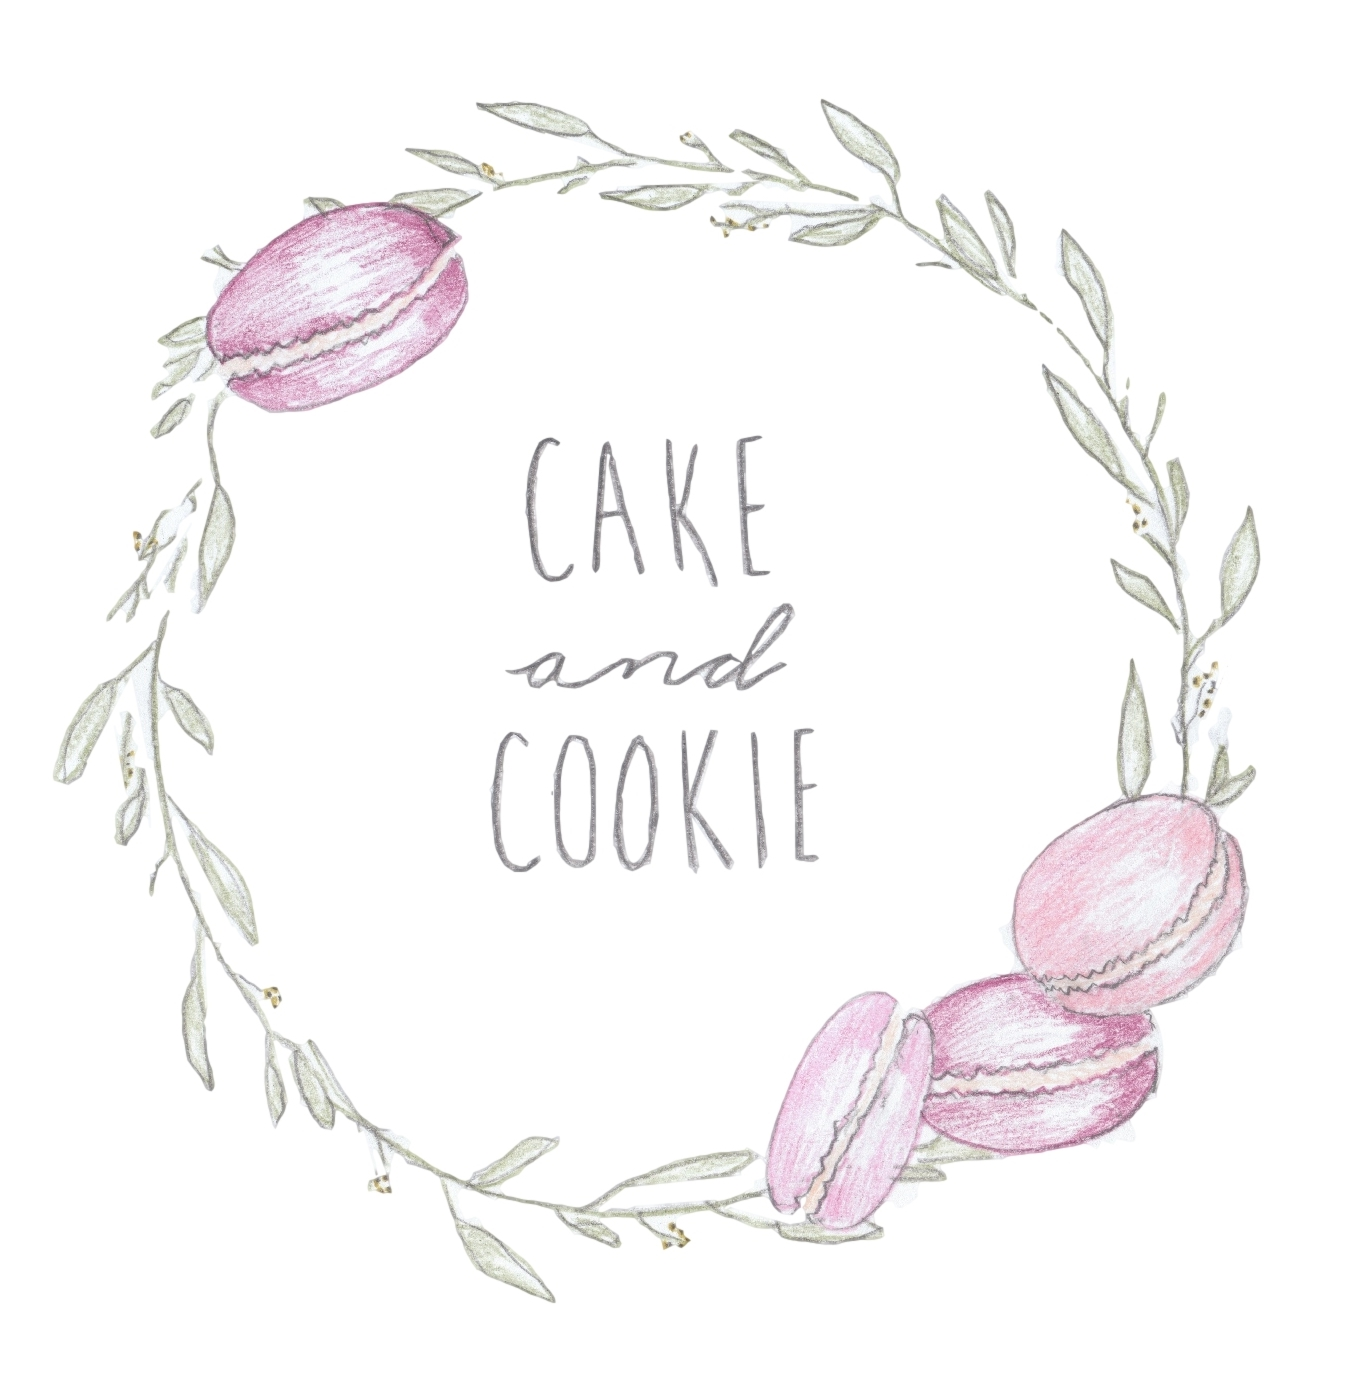 Cake and Cookie